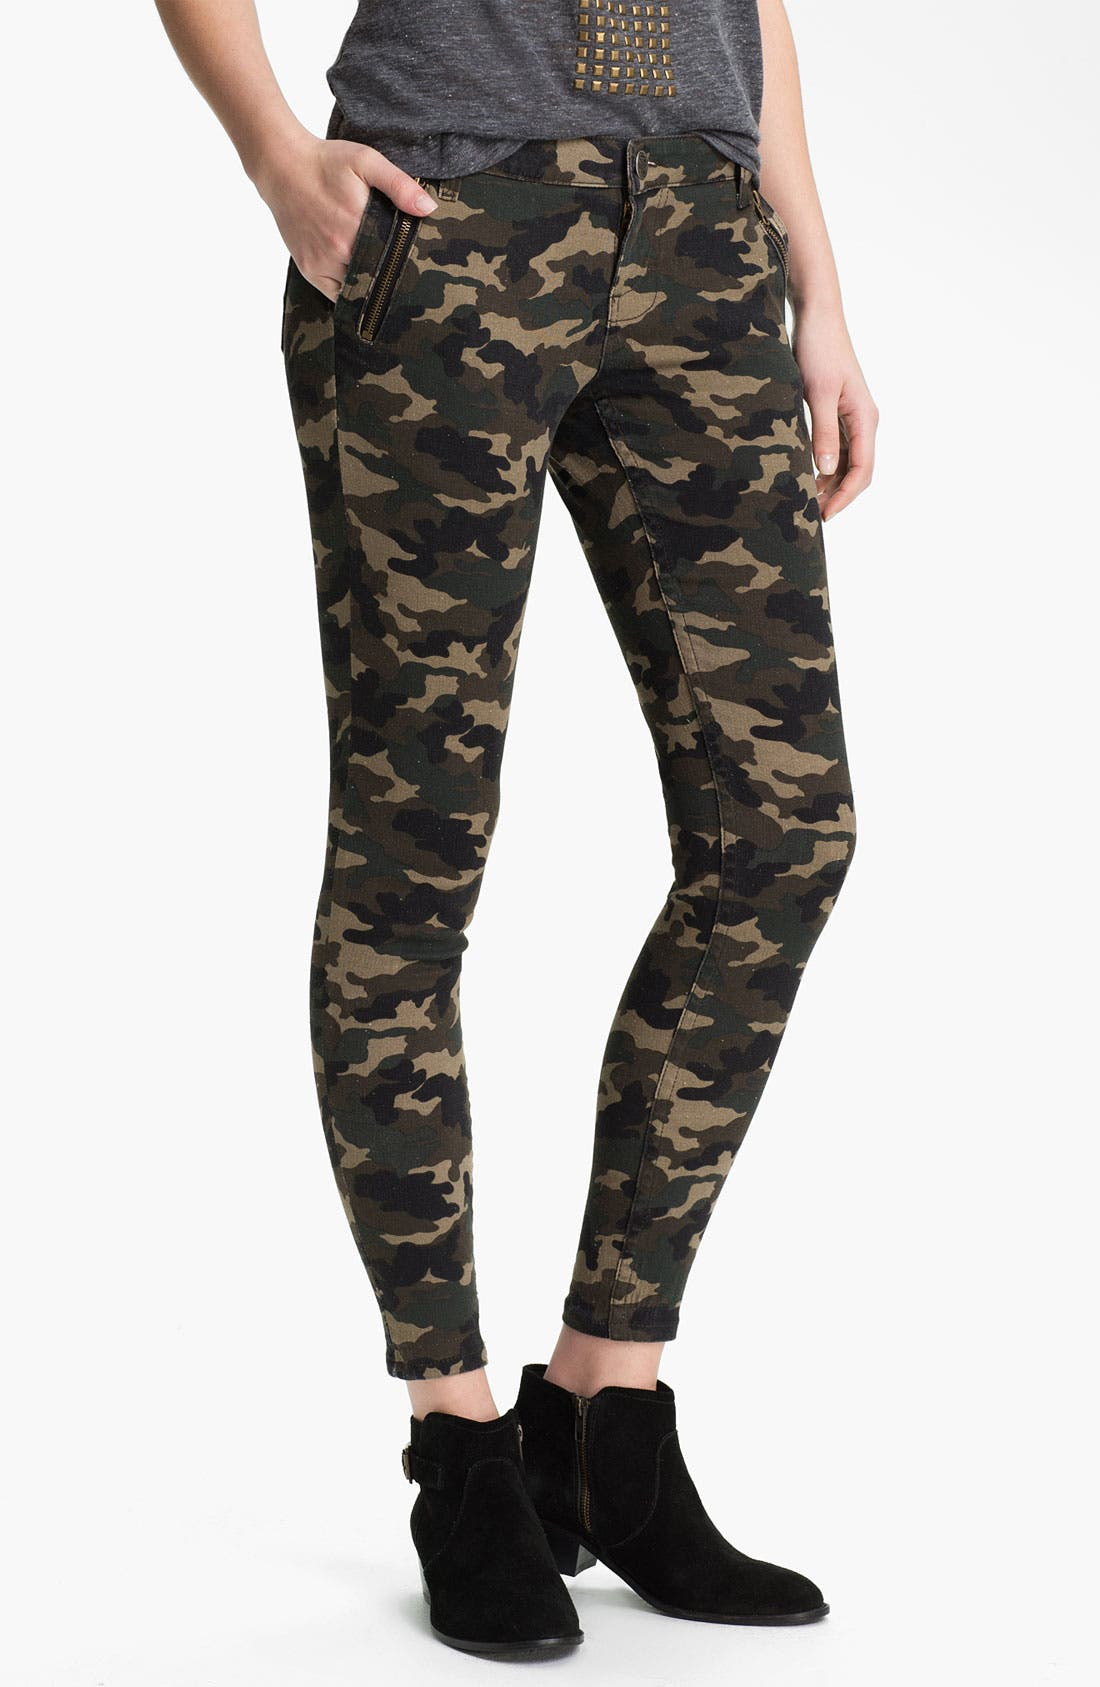 Alternate Image 1 Selected - See Thru Soul Camo Print Skinny Pants (Juniors)